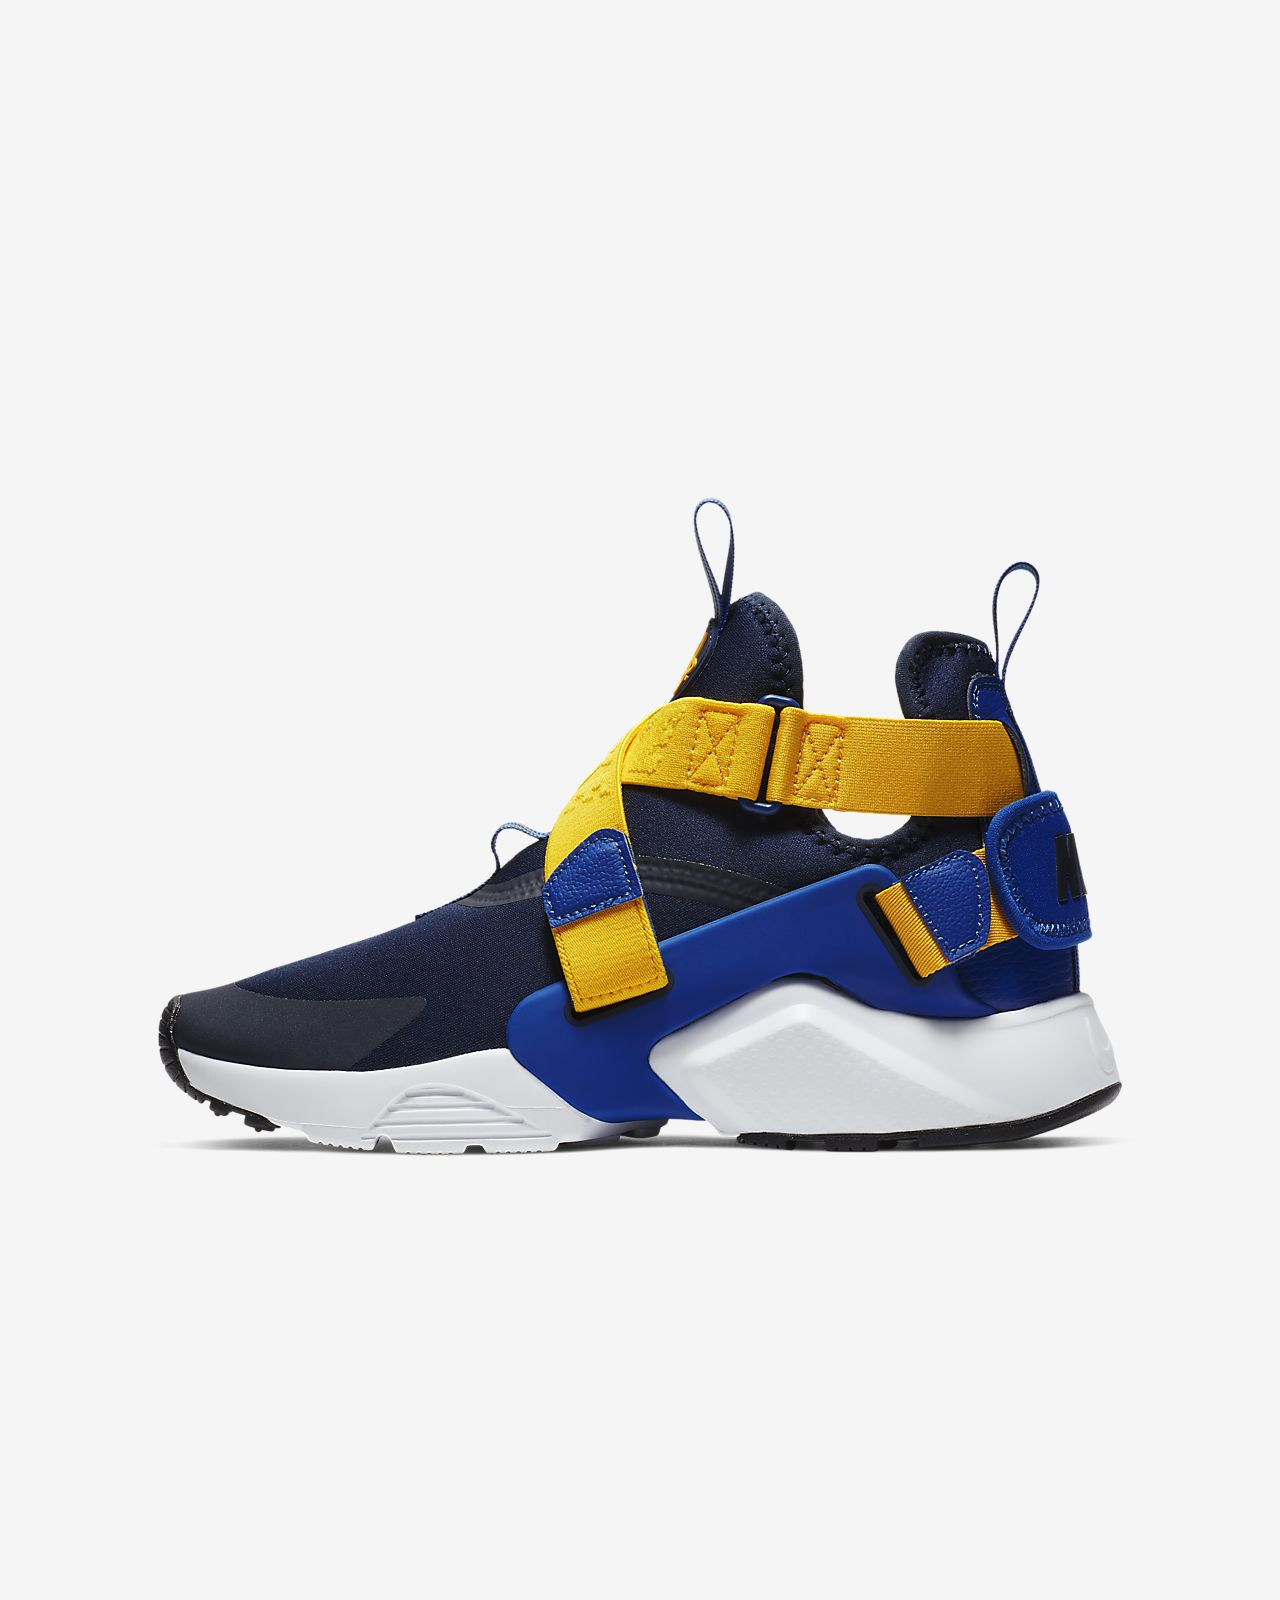 timeless design 64a87 2f87d ... Nike Huarache City Big Kids  Shoe